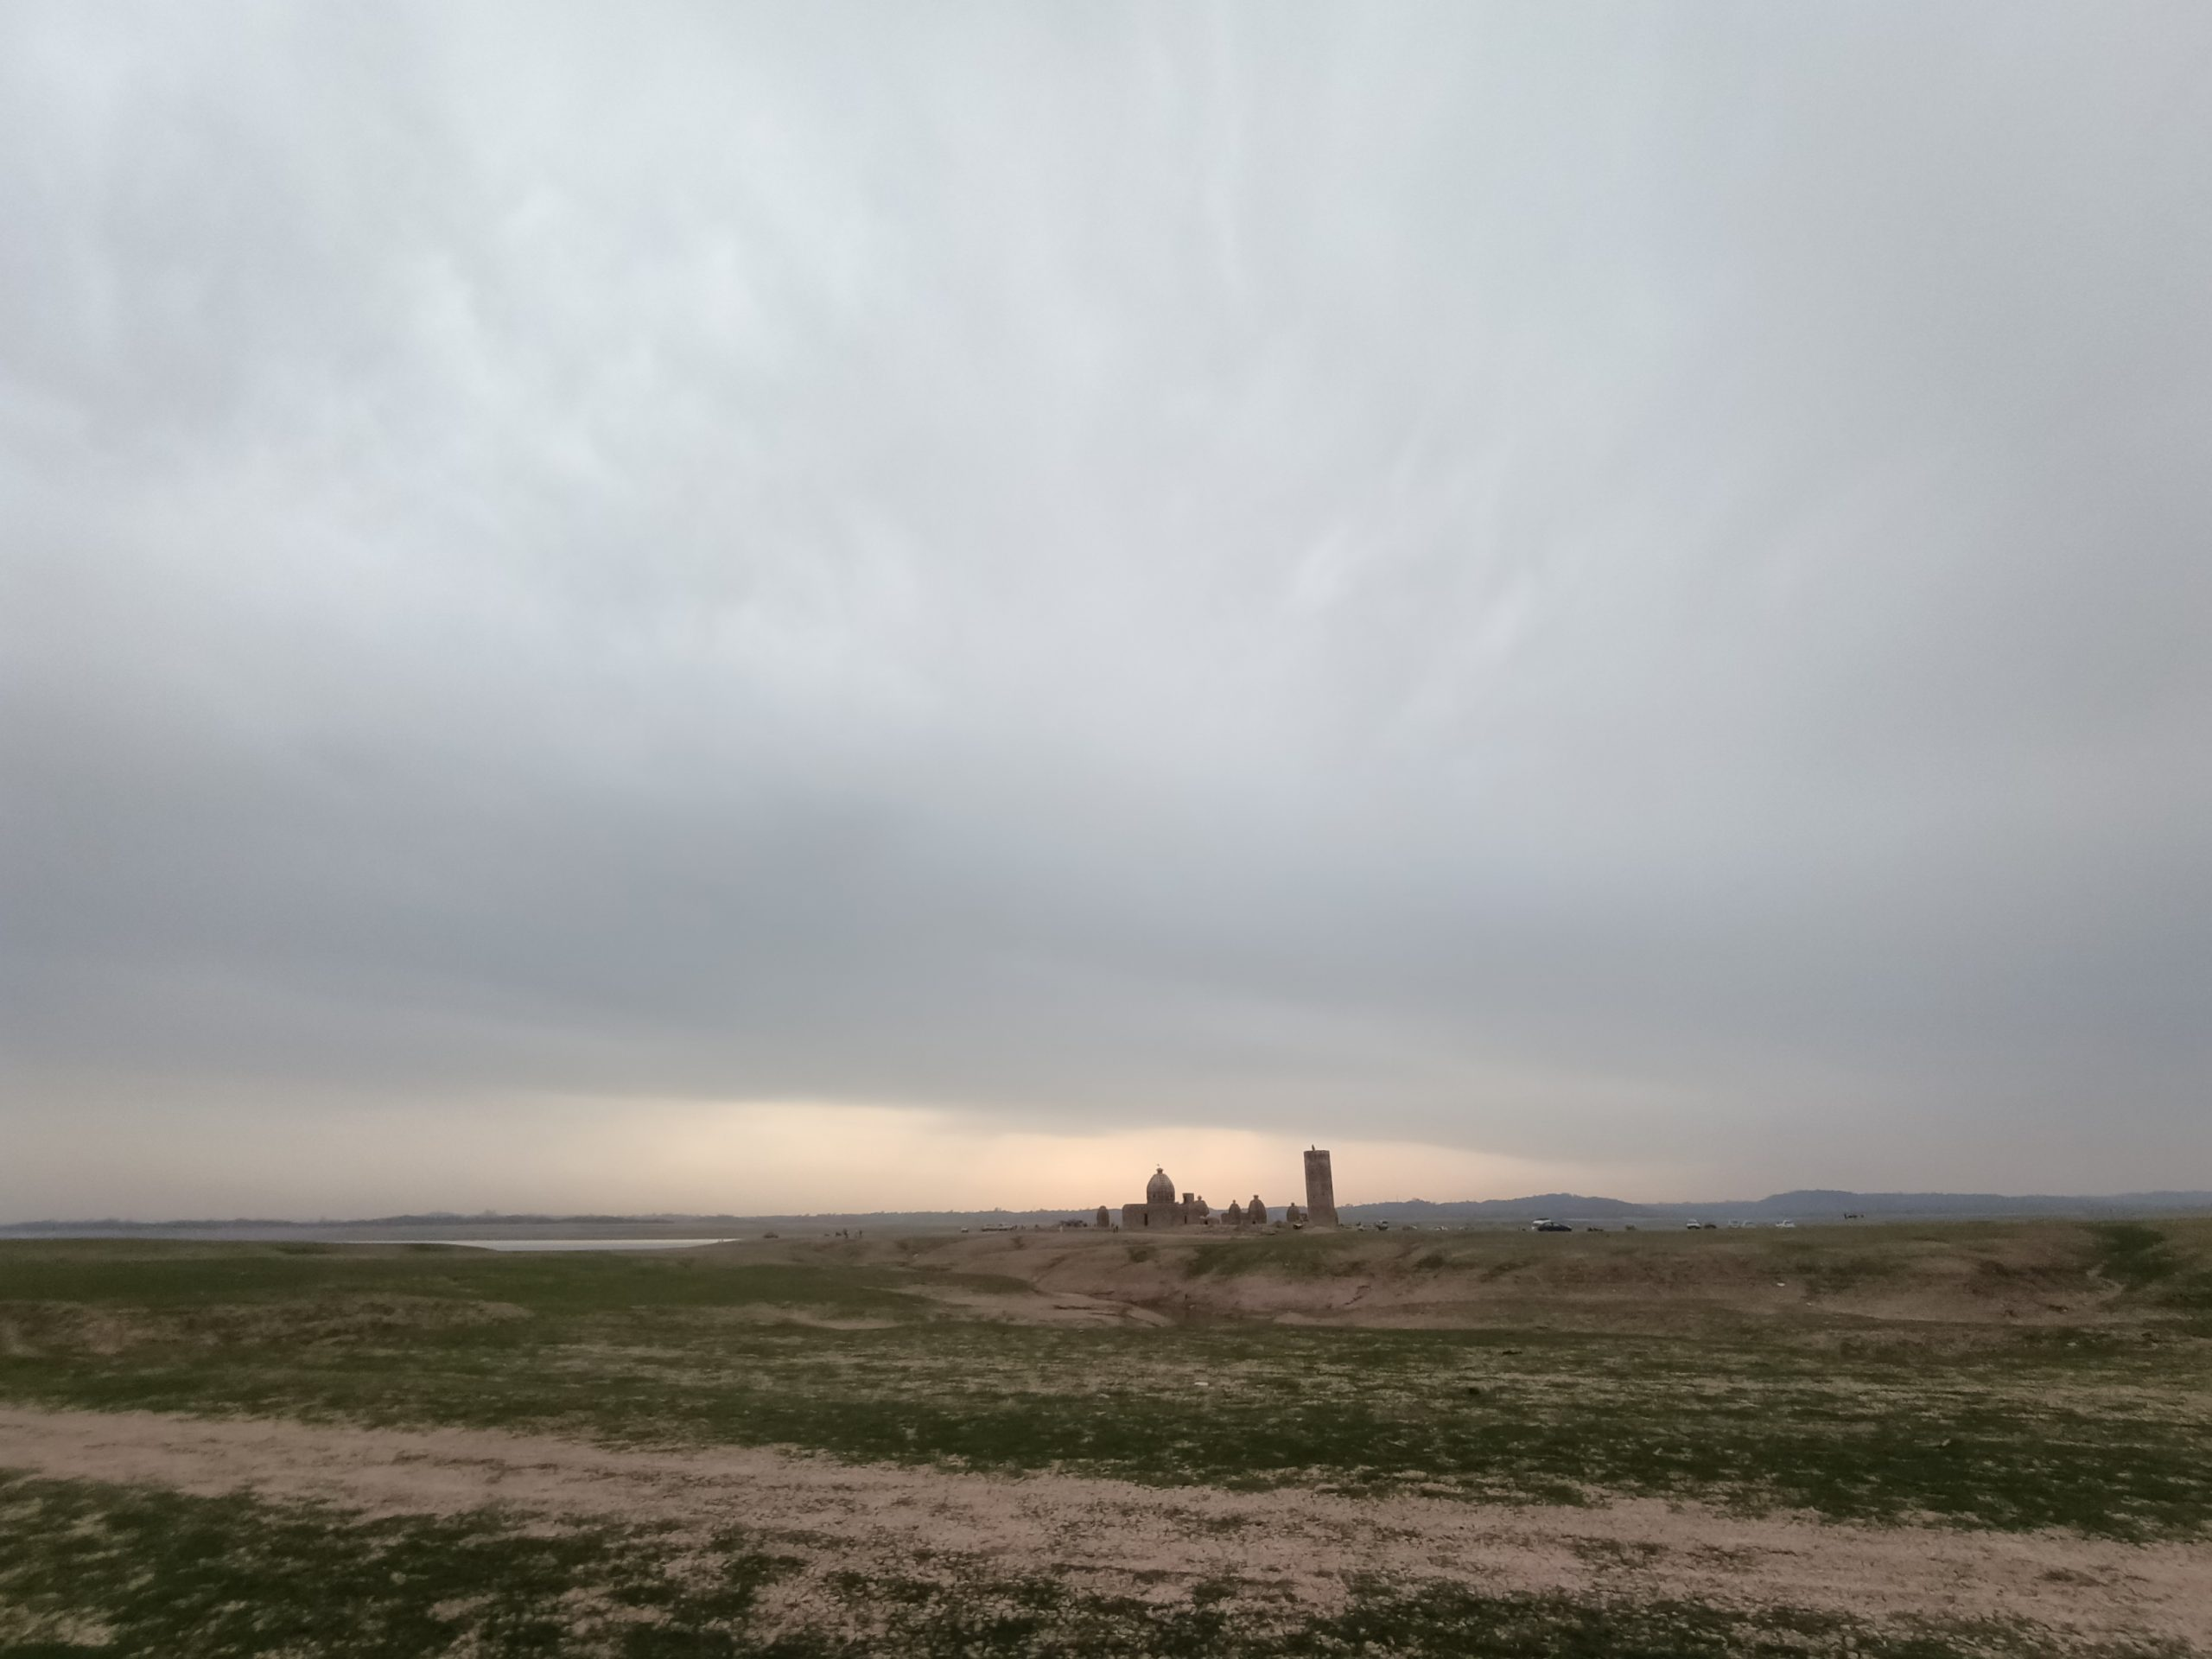 Land and cloudy sky